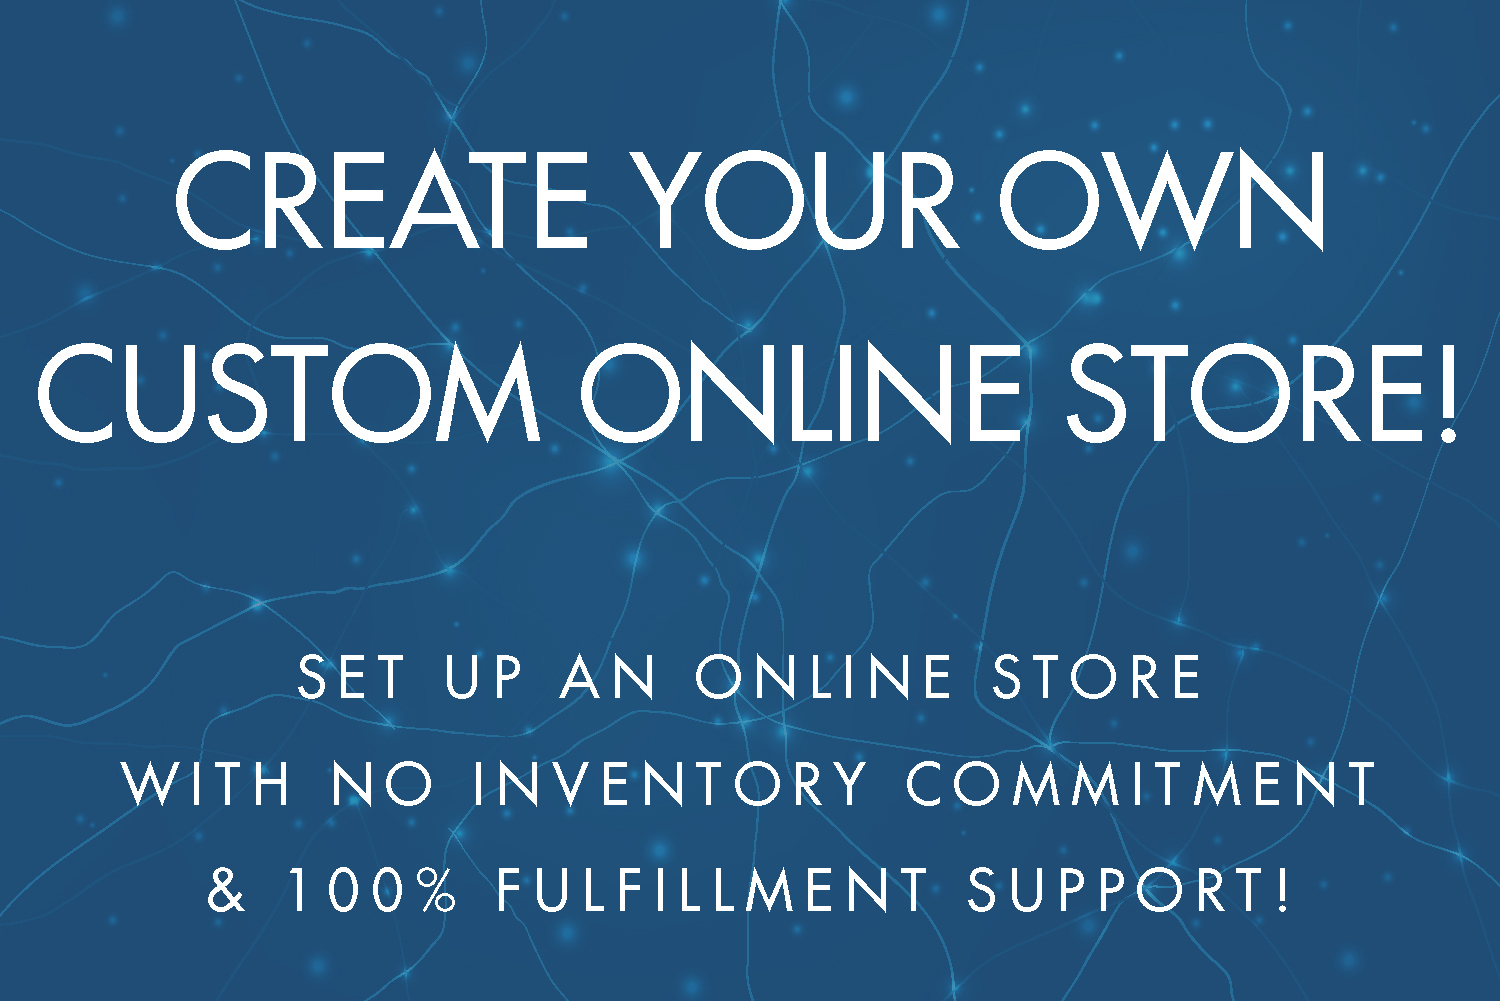 Create Your Own Custom Online Store